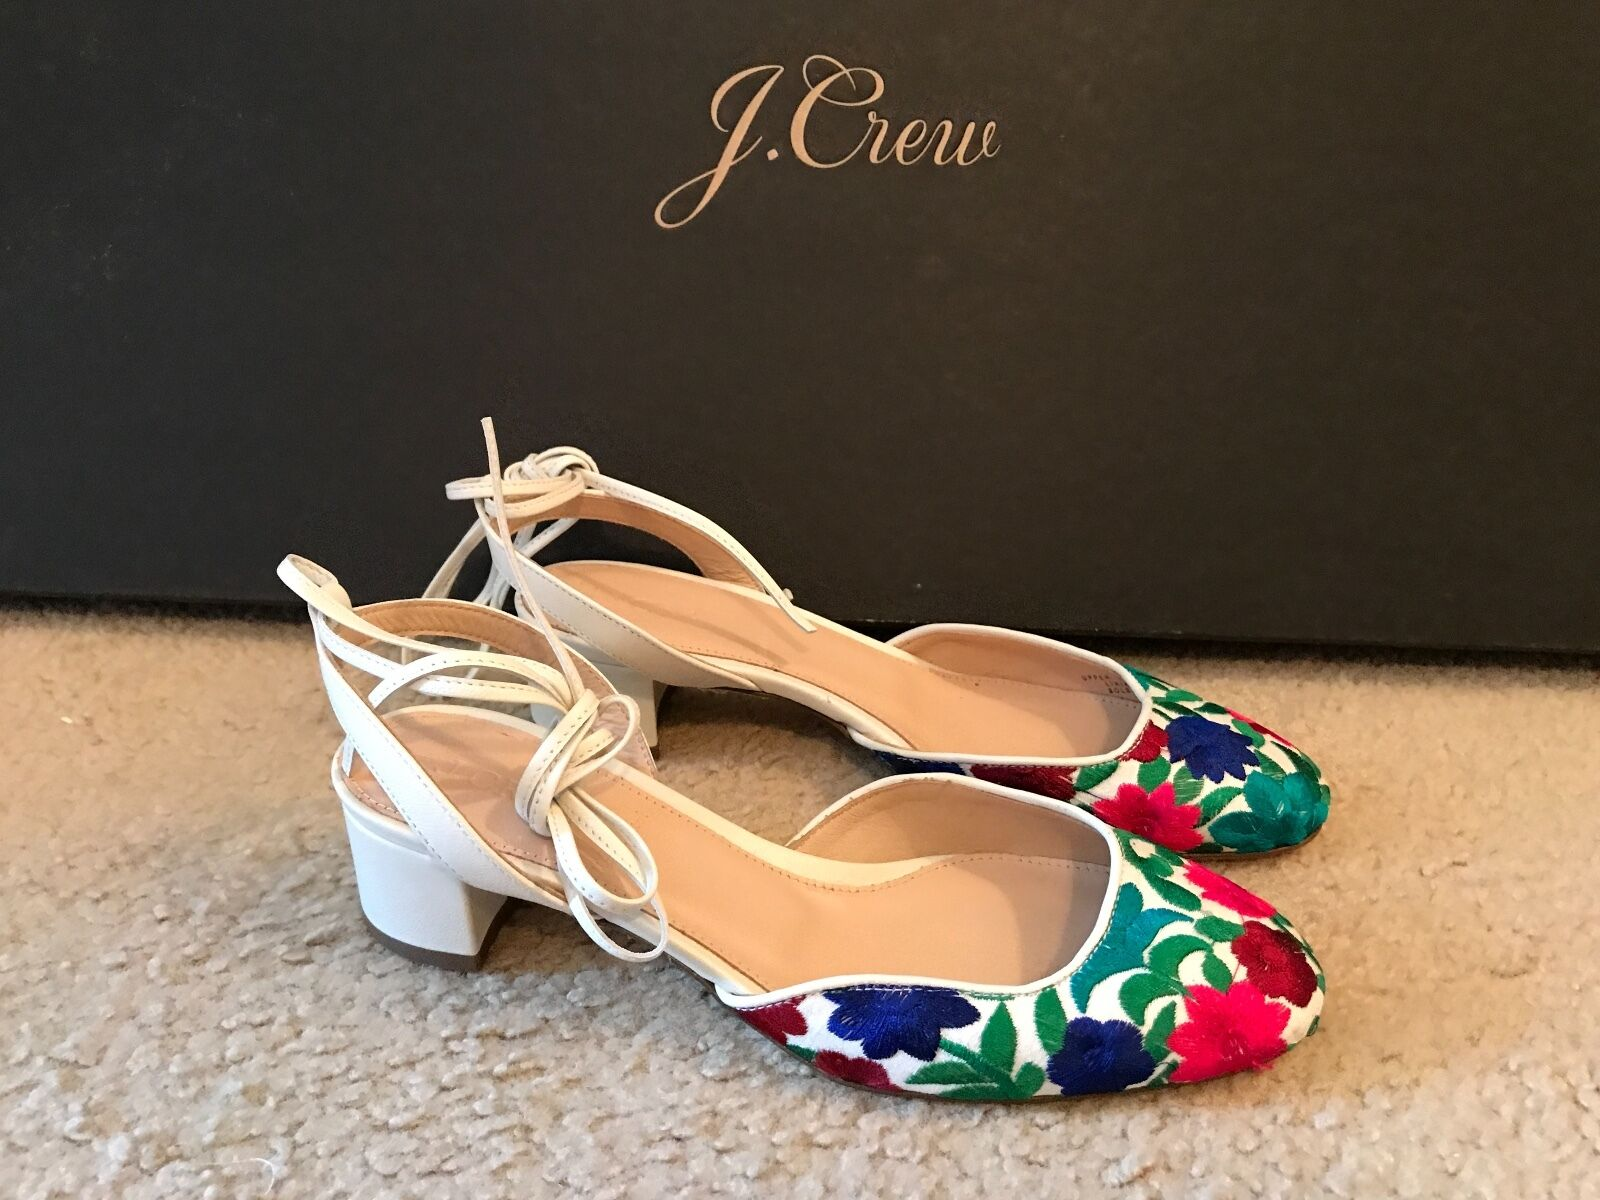 J.CREW ANKLE-WRAP SLINGBACK HEELS WITH EMBROIDERY Größe 6,5M Rosa Grün BL G4102